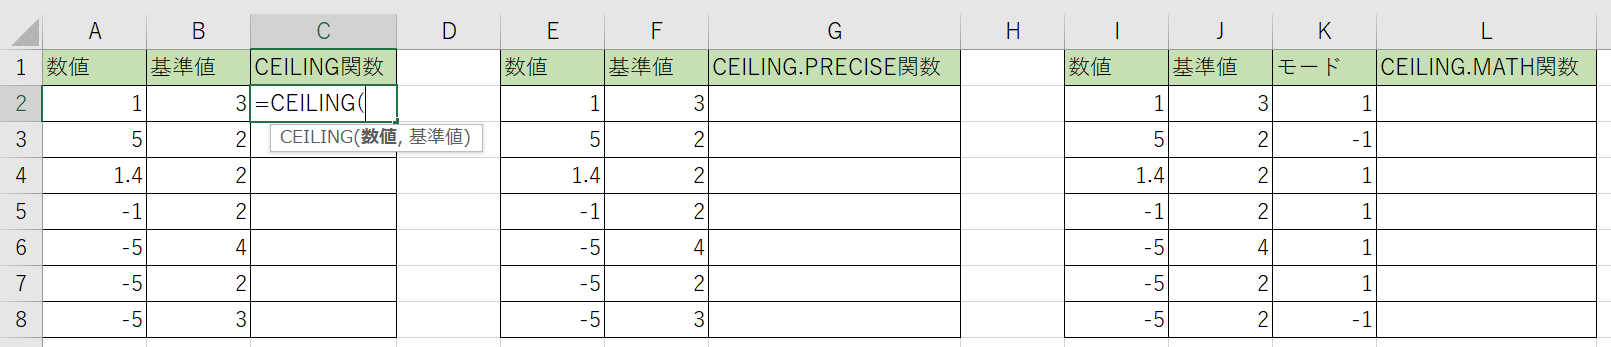 CEILING関数を書きます